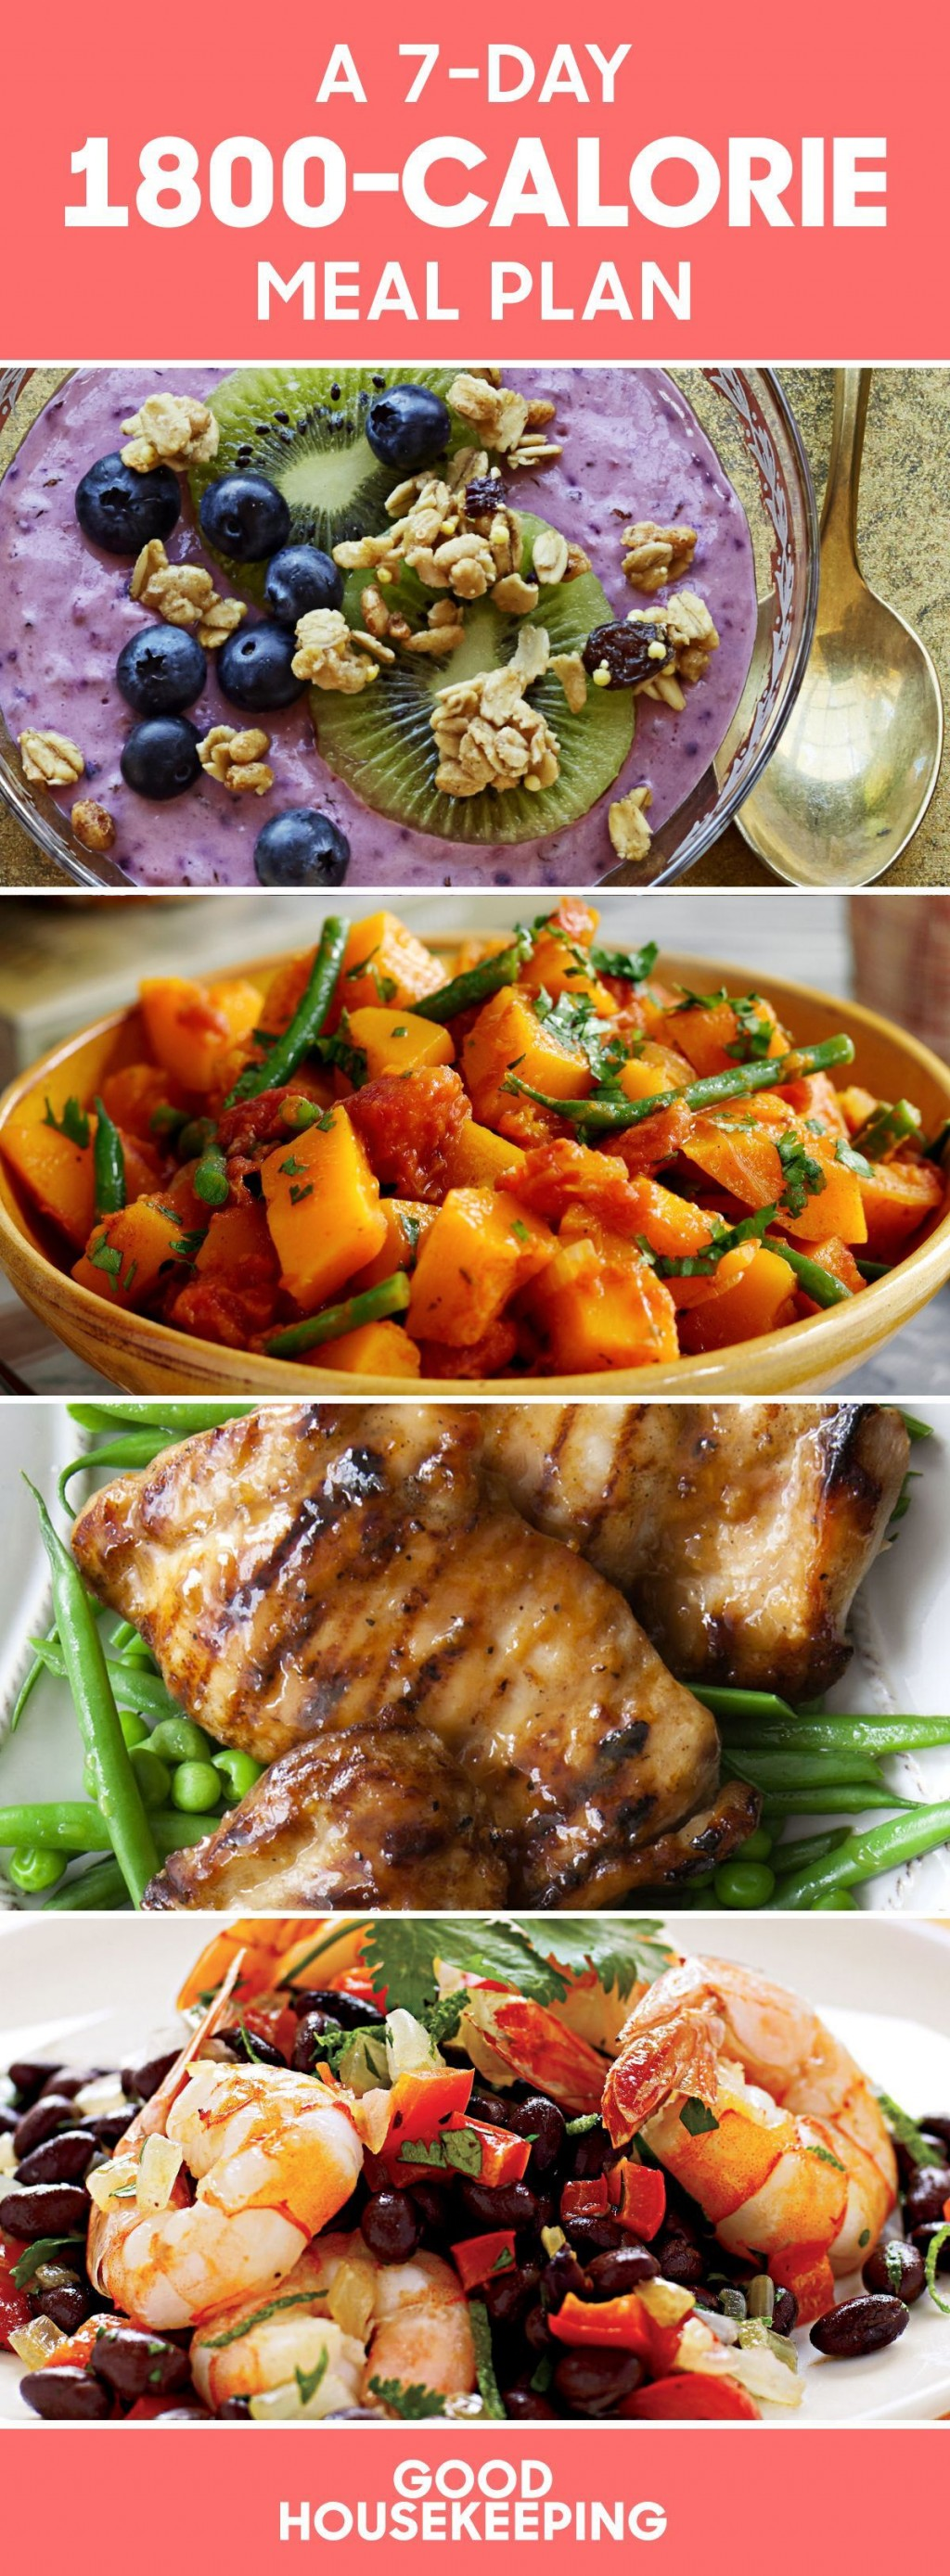 003 Simple Sample 1800 Calorie Meal Plan Pdf Highest Quality Large